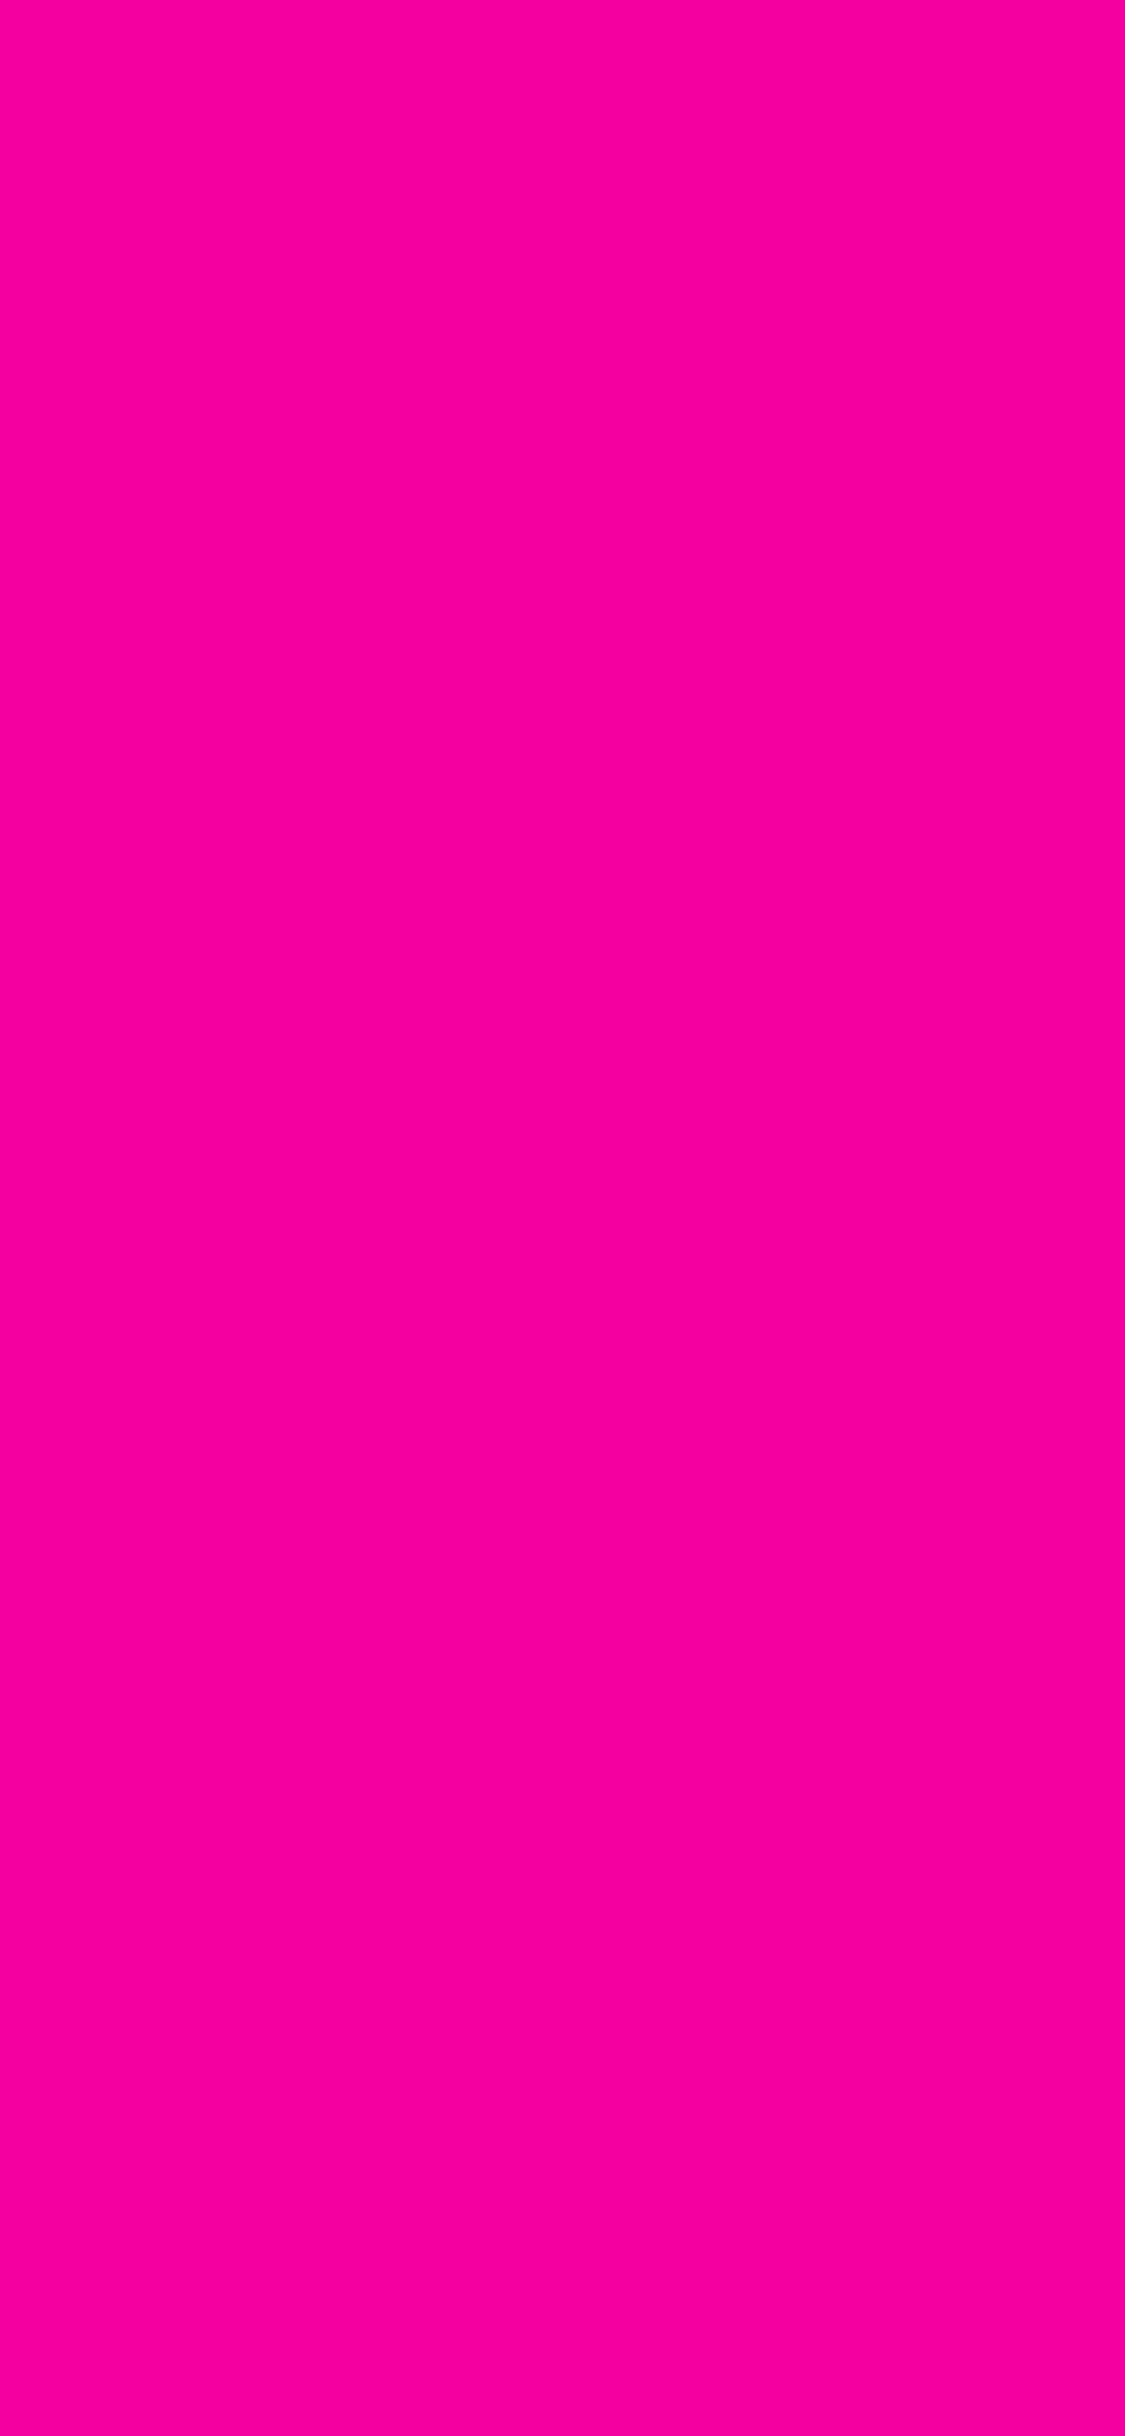 1125x2436 Fashion Fuchsia Solid Color Background